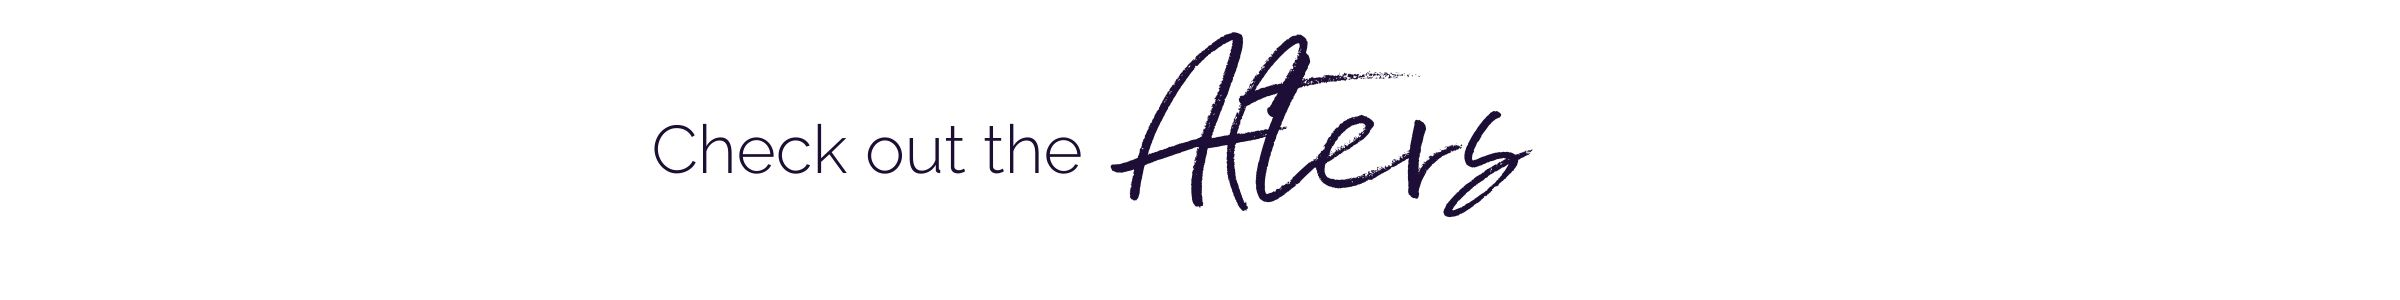 Check out the afters - boutique interior designer